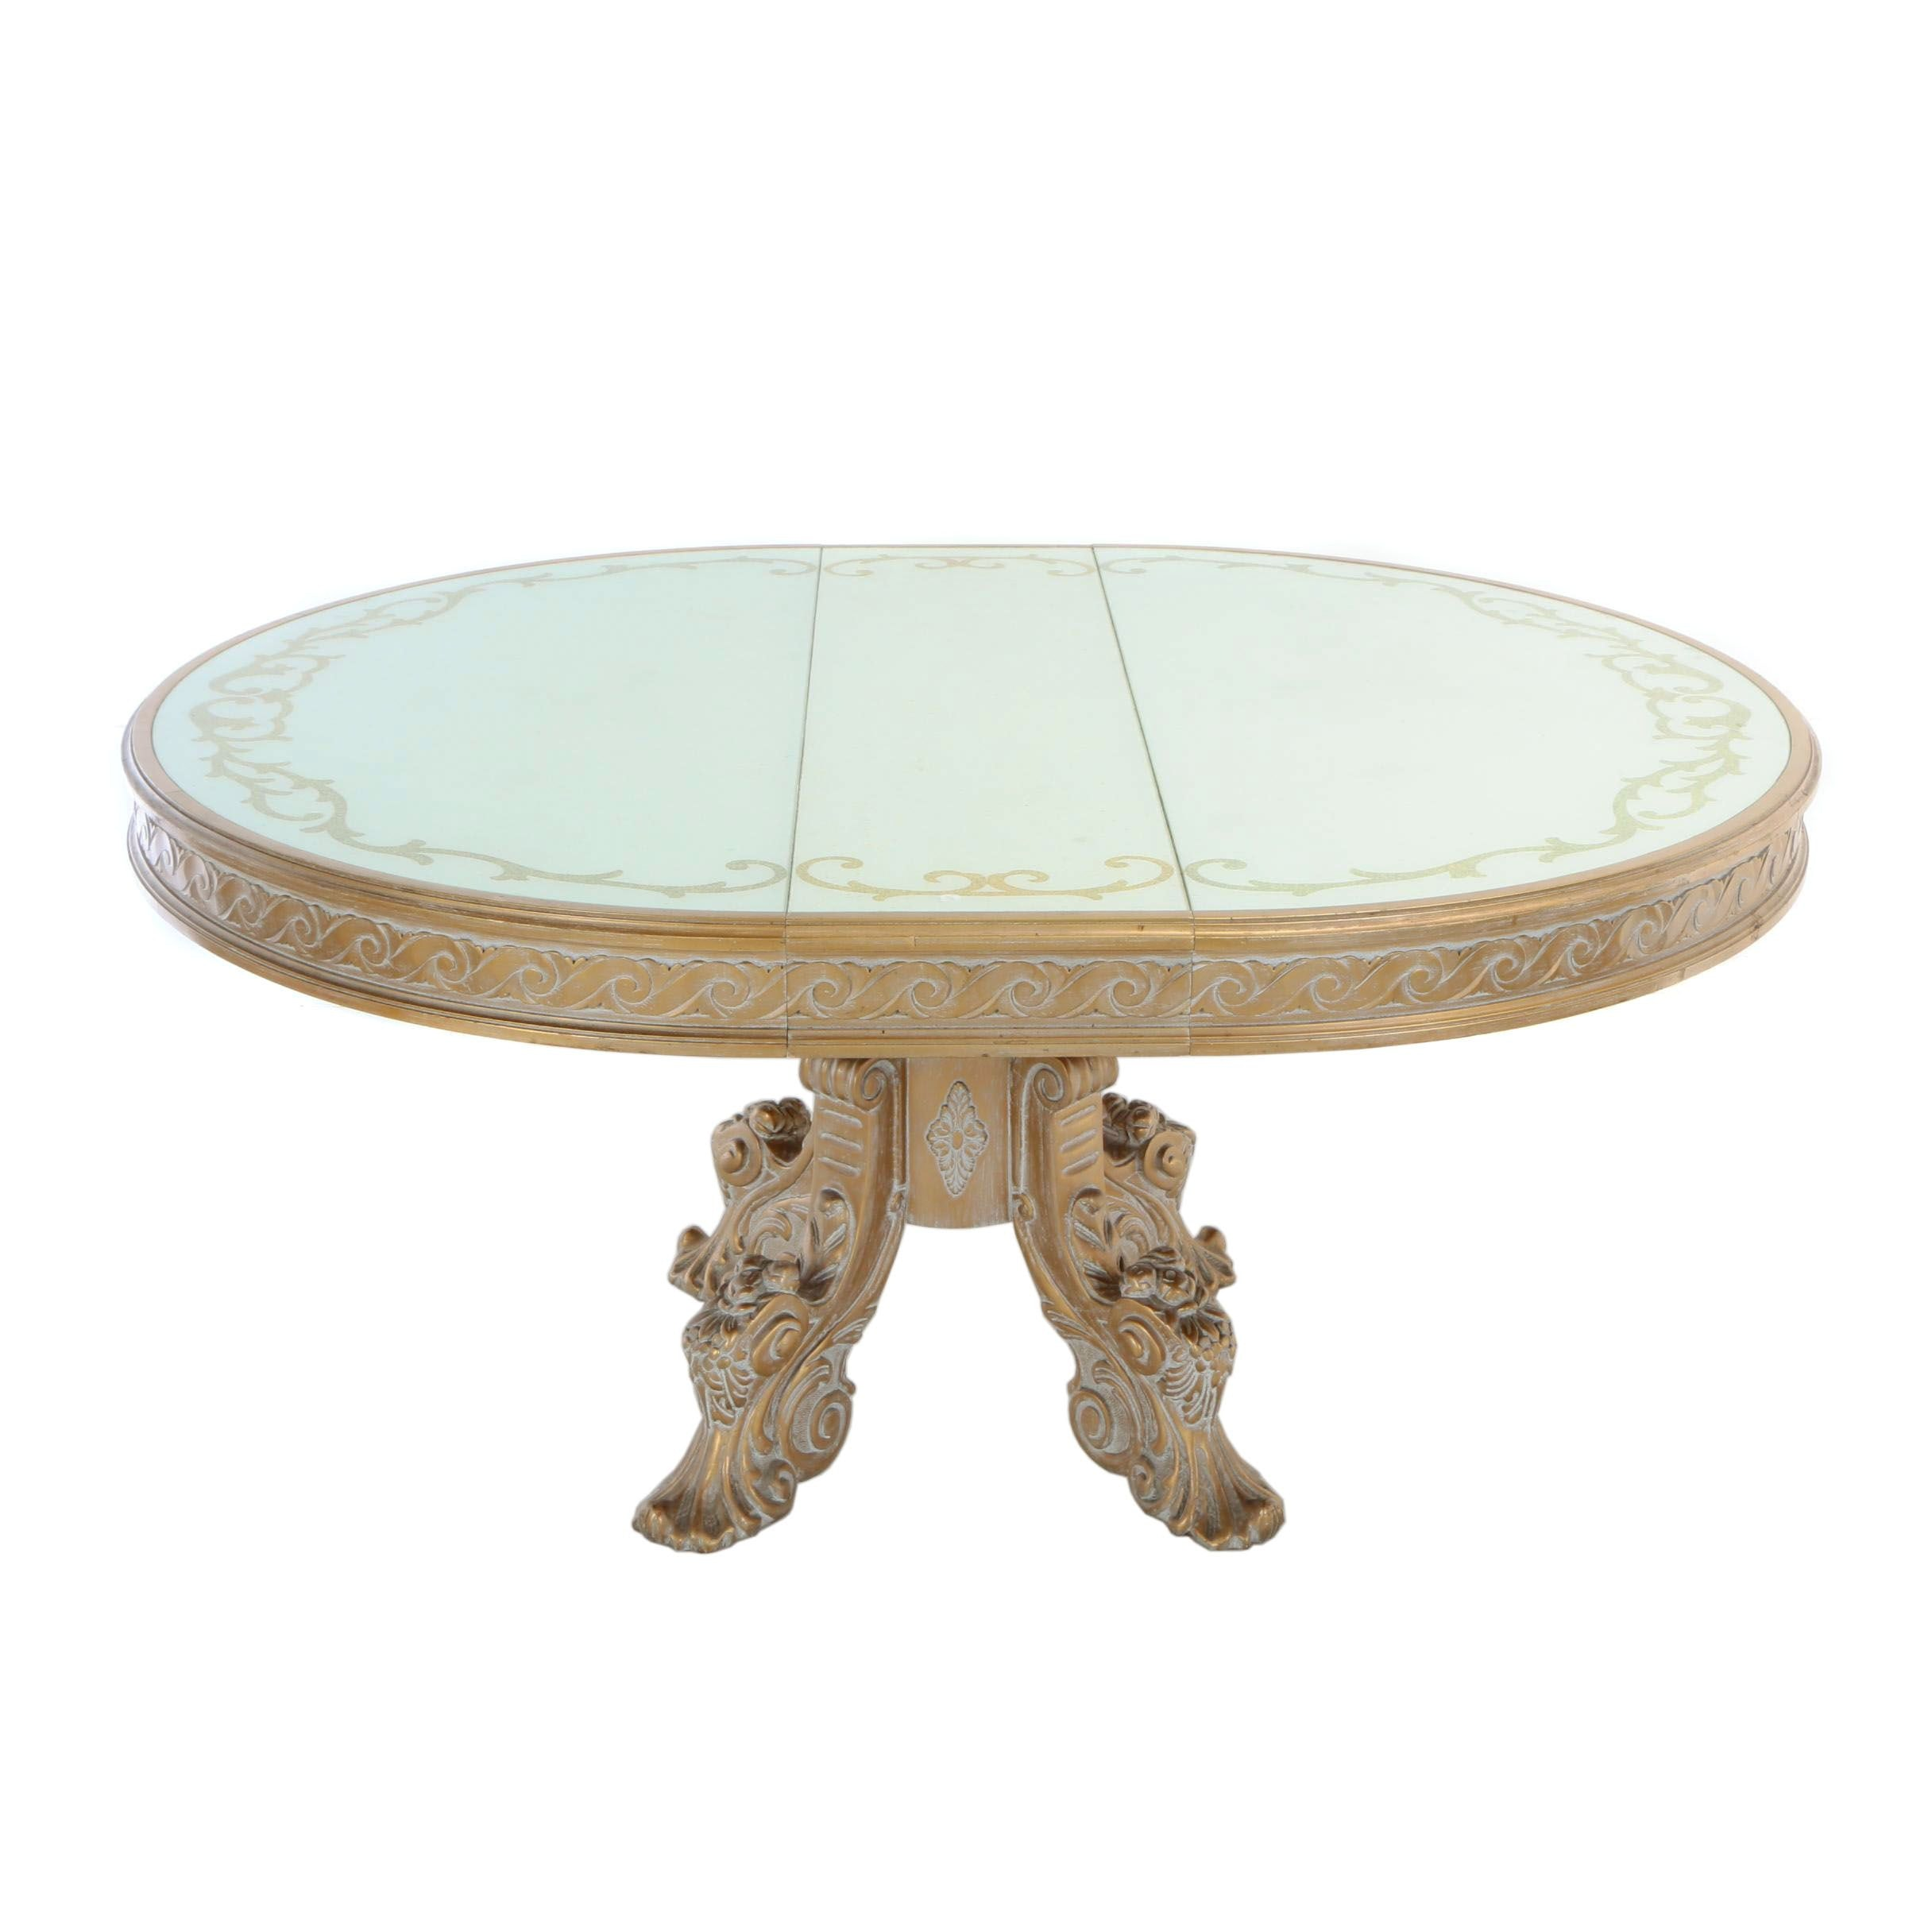 Baroque Style Giltwood Extending Dining Table with Pearlescent Glass Top